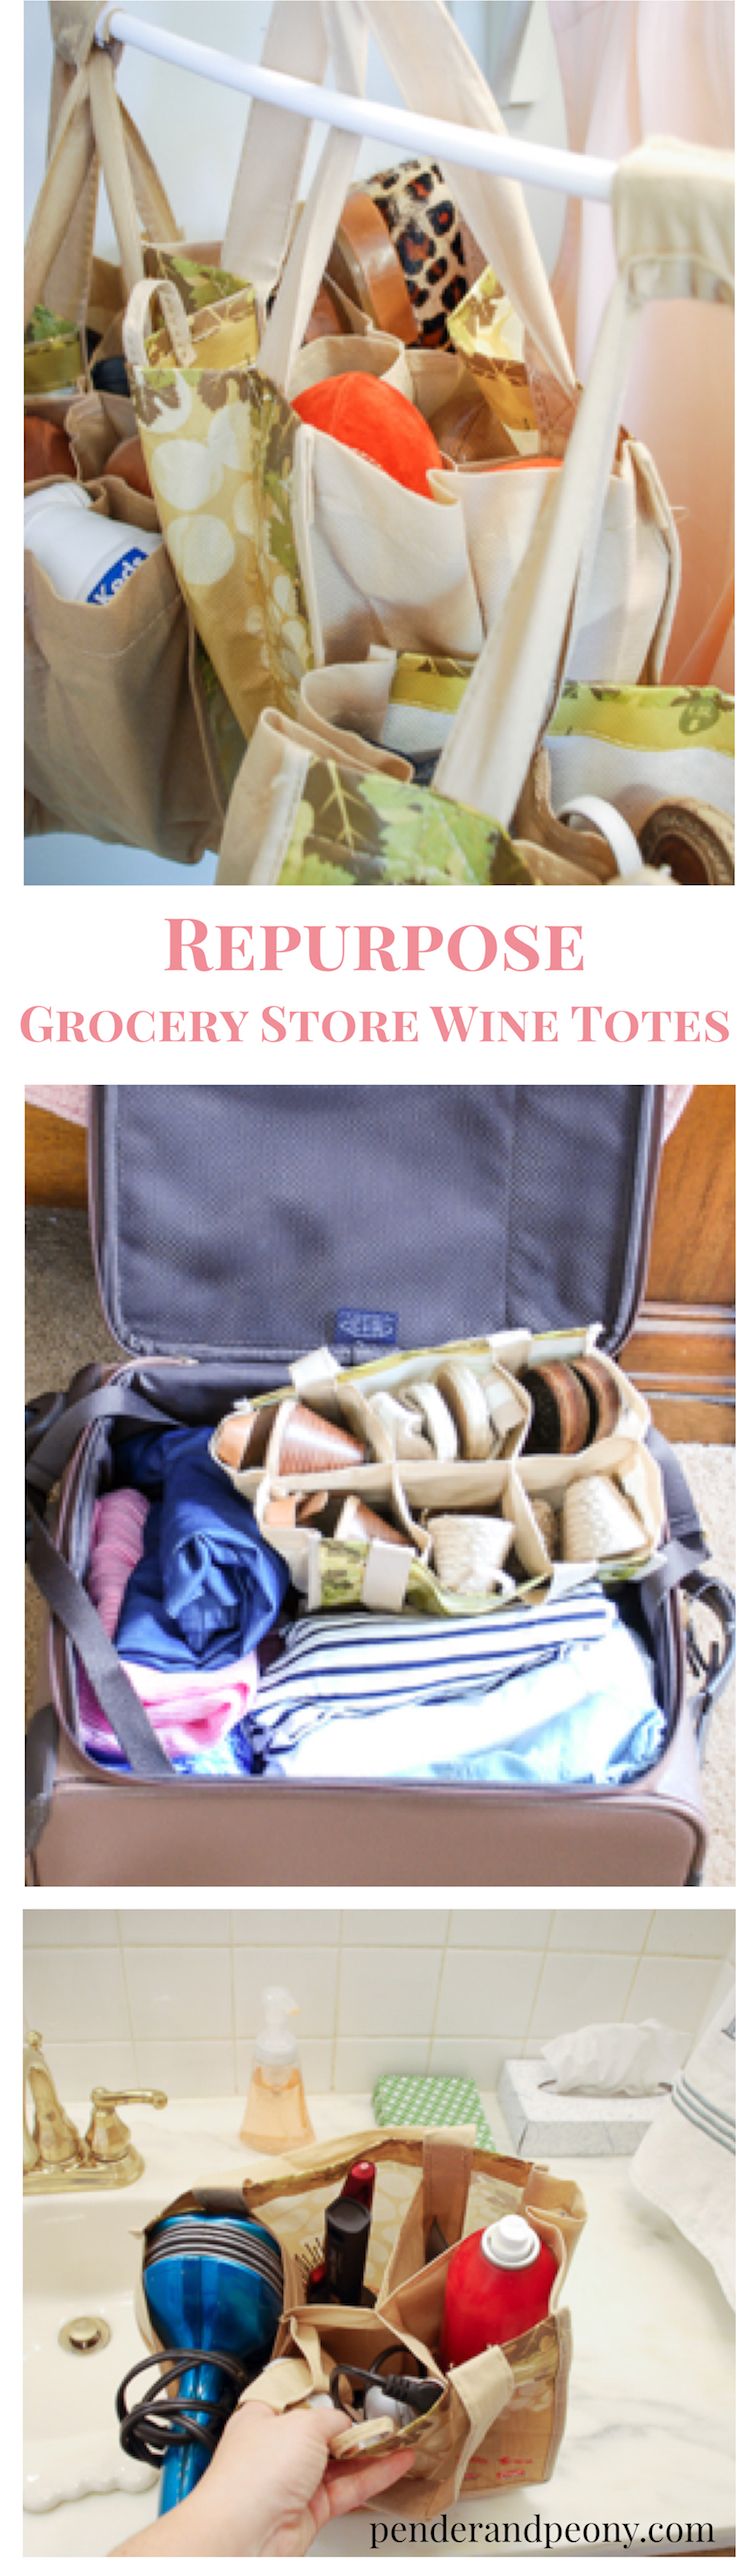 Repurpose grocery store wine totes as storage caddies to organize your closet, bathroom, and suitcase. No crafting, sewing, or gluing necessary!